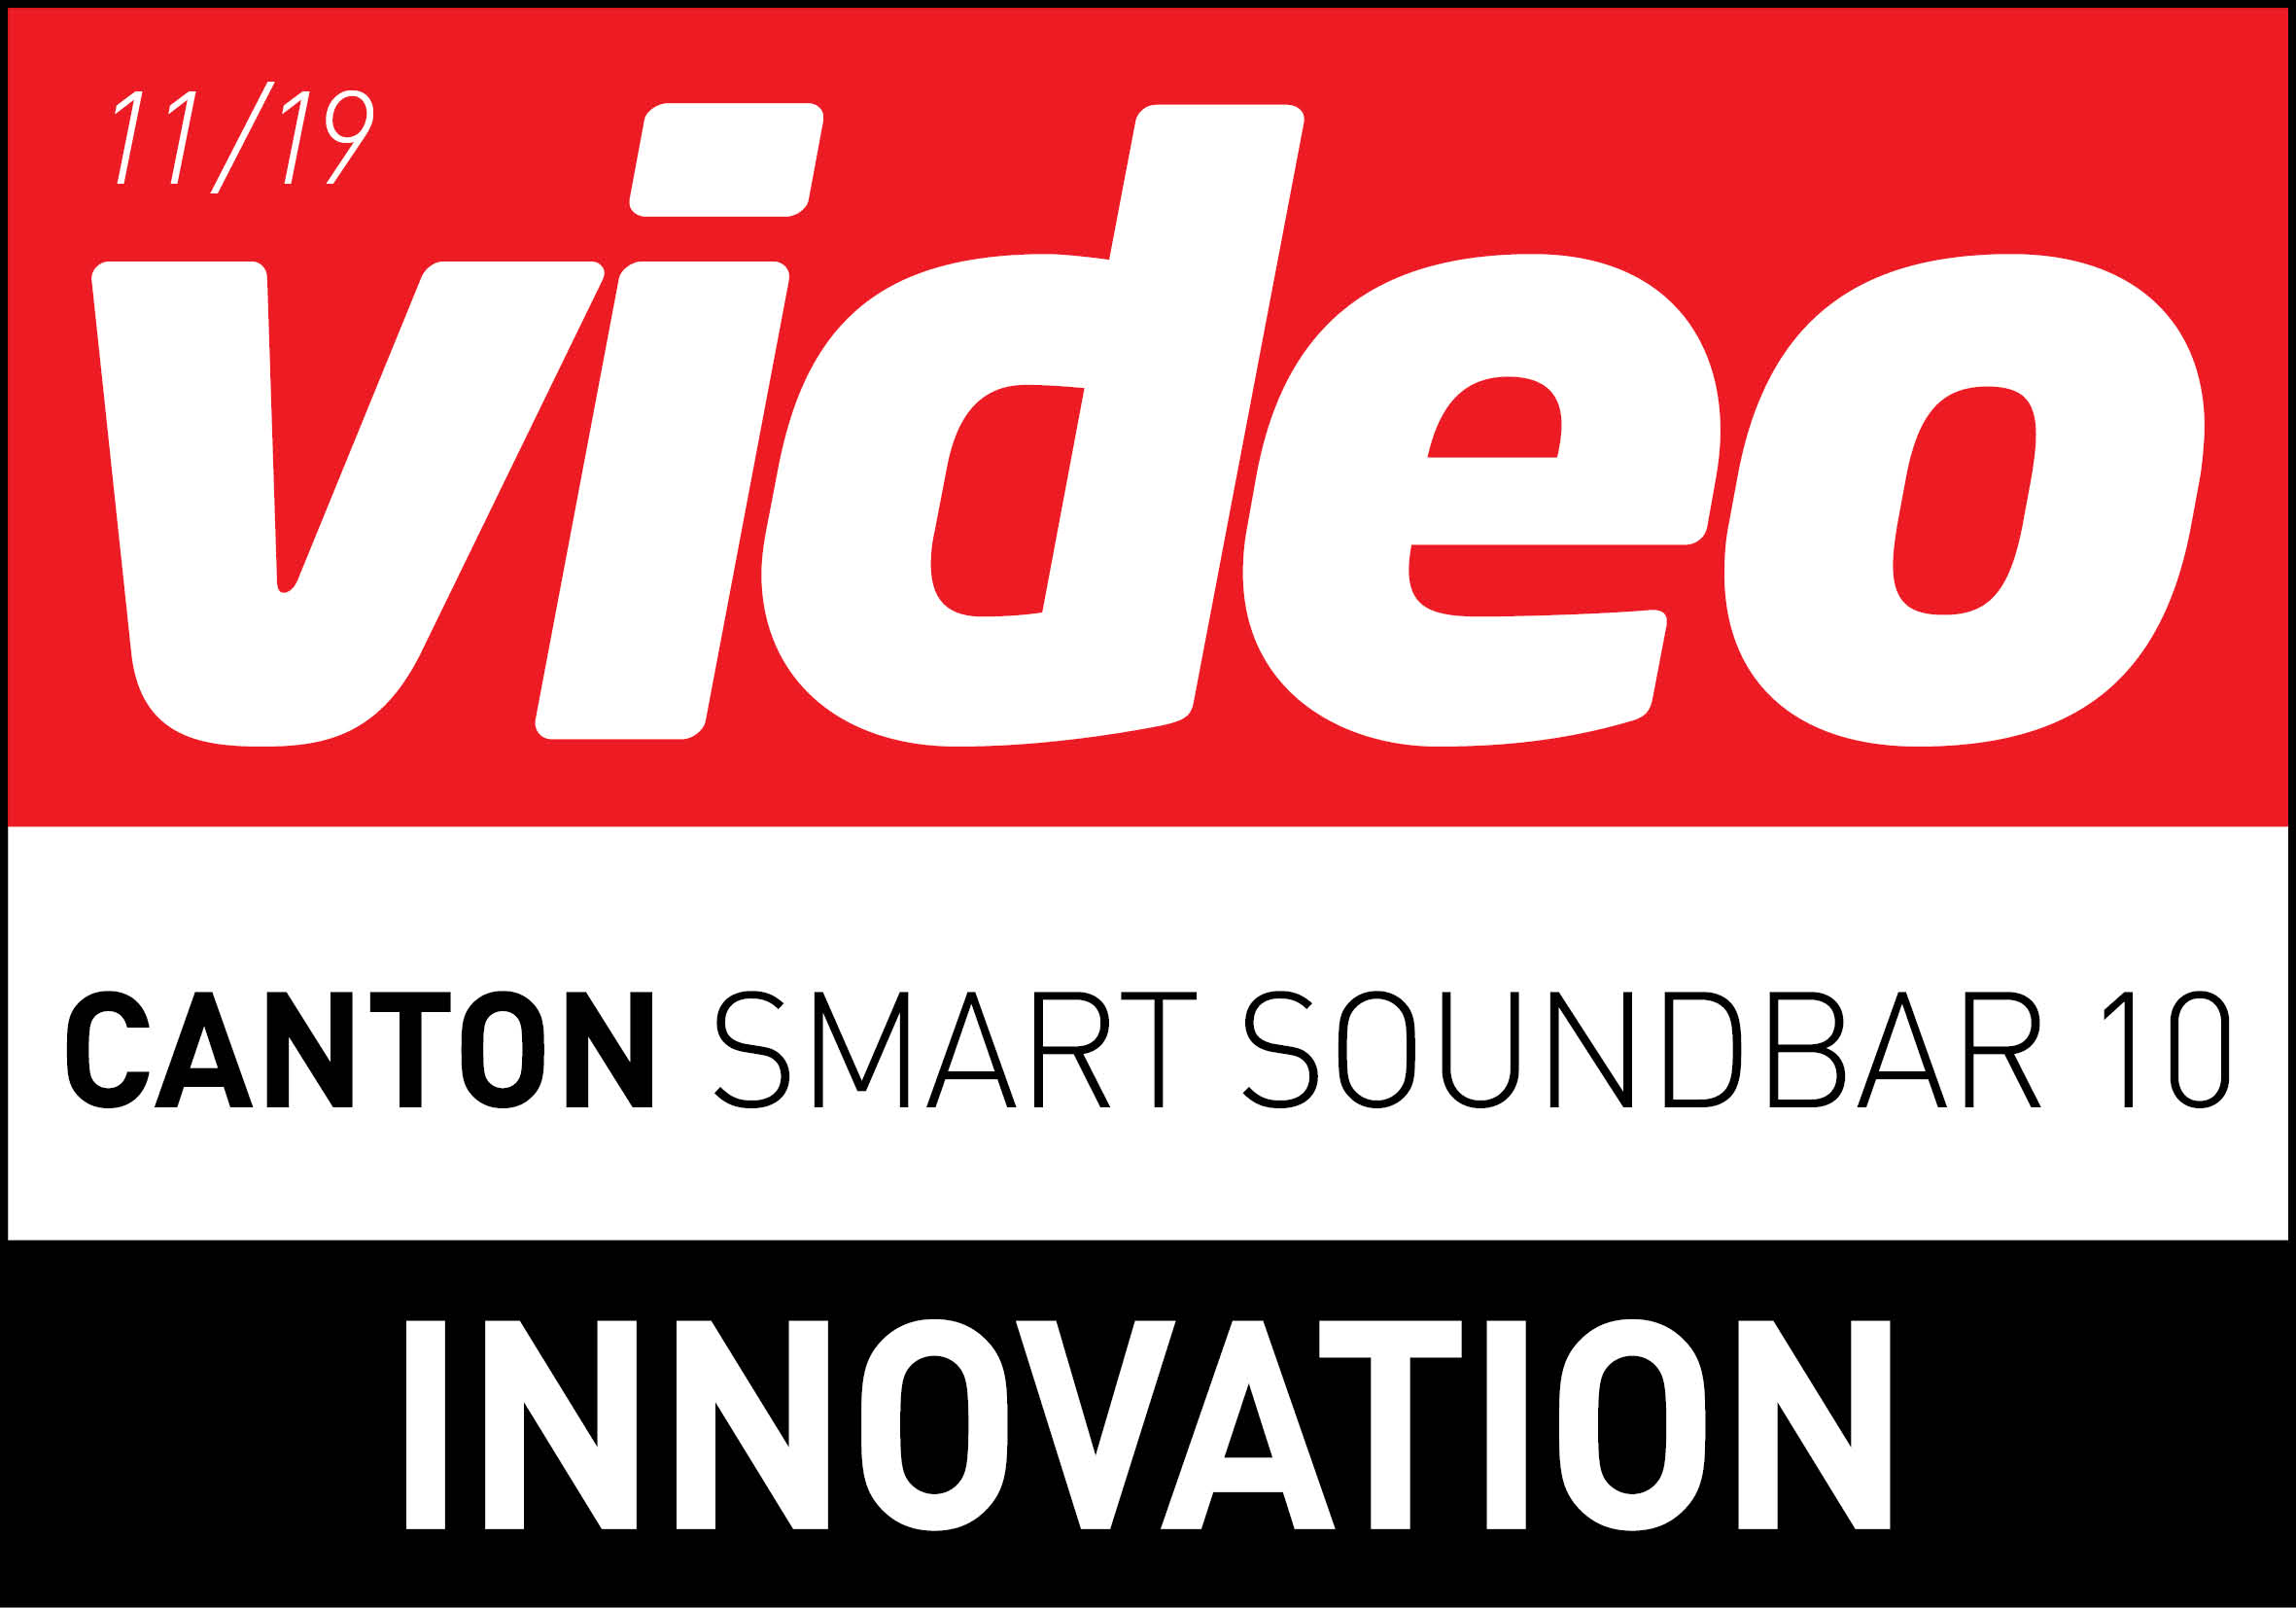 Smart_Soundbar_10_Sub_8_INNOVATION_video_11-197kpsVAYPfAzzH